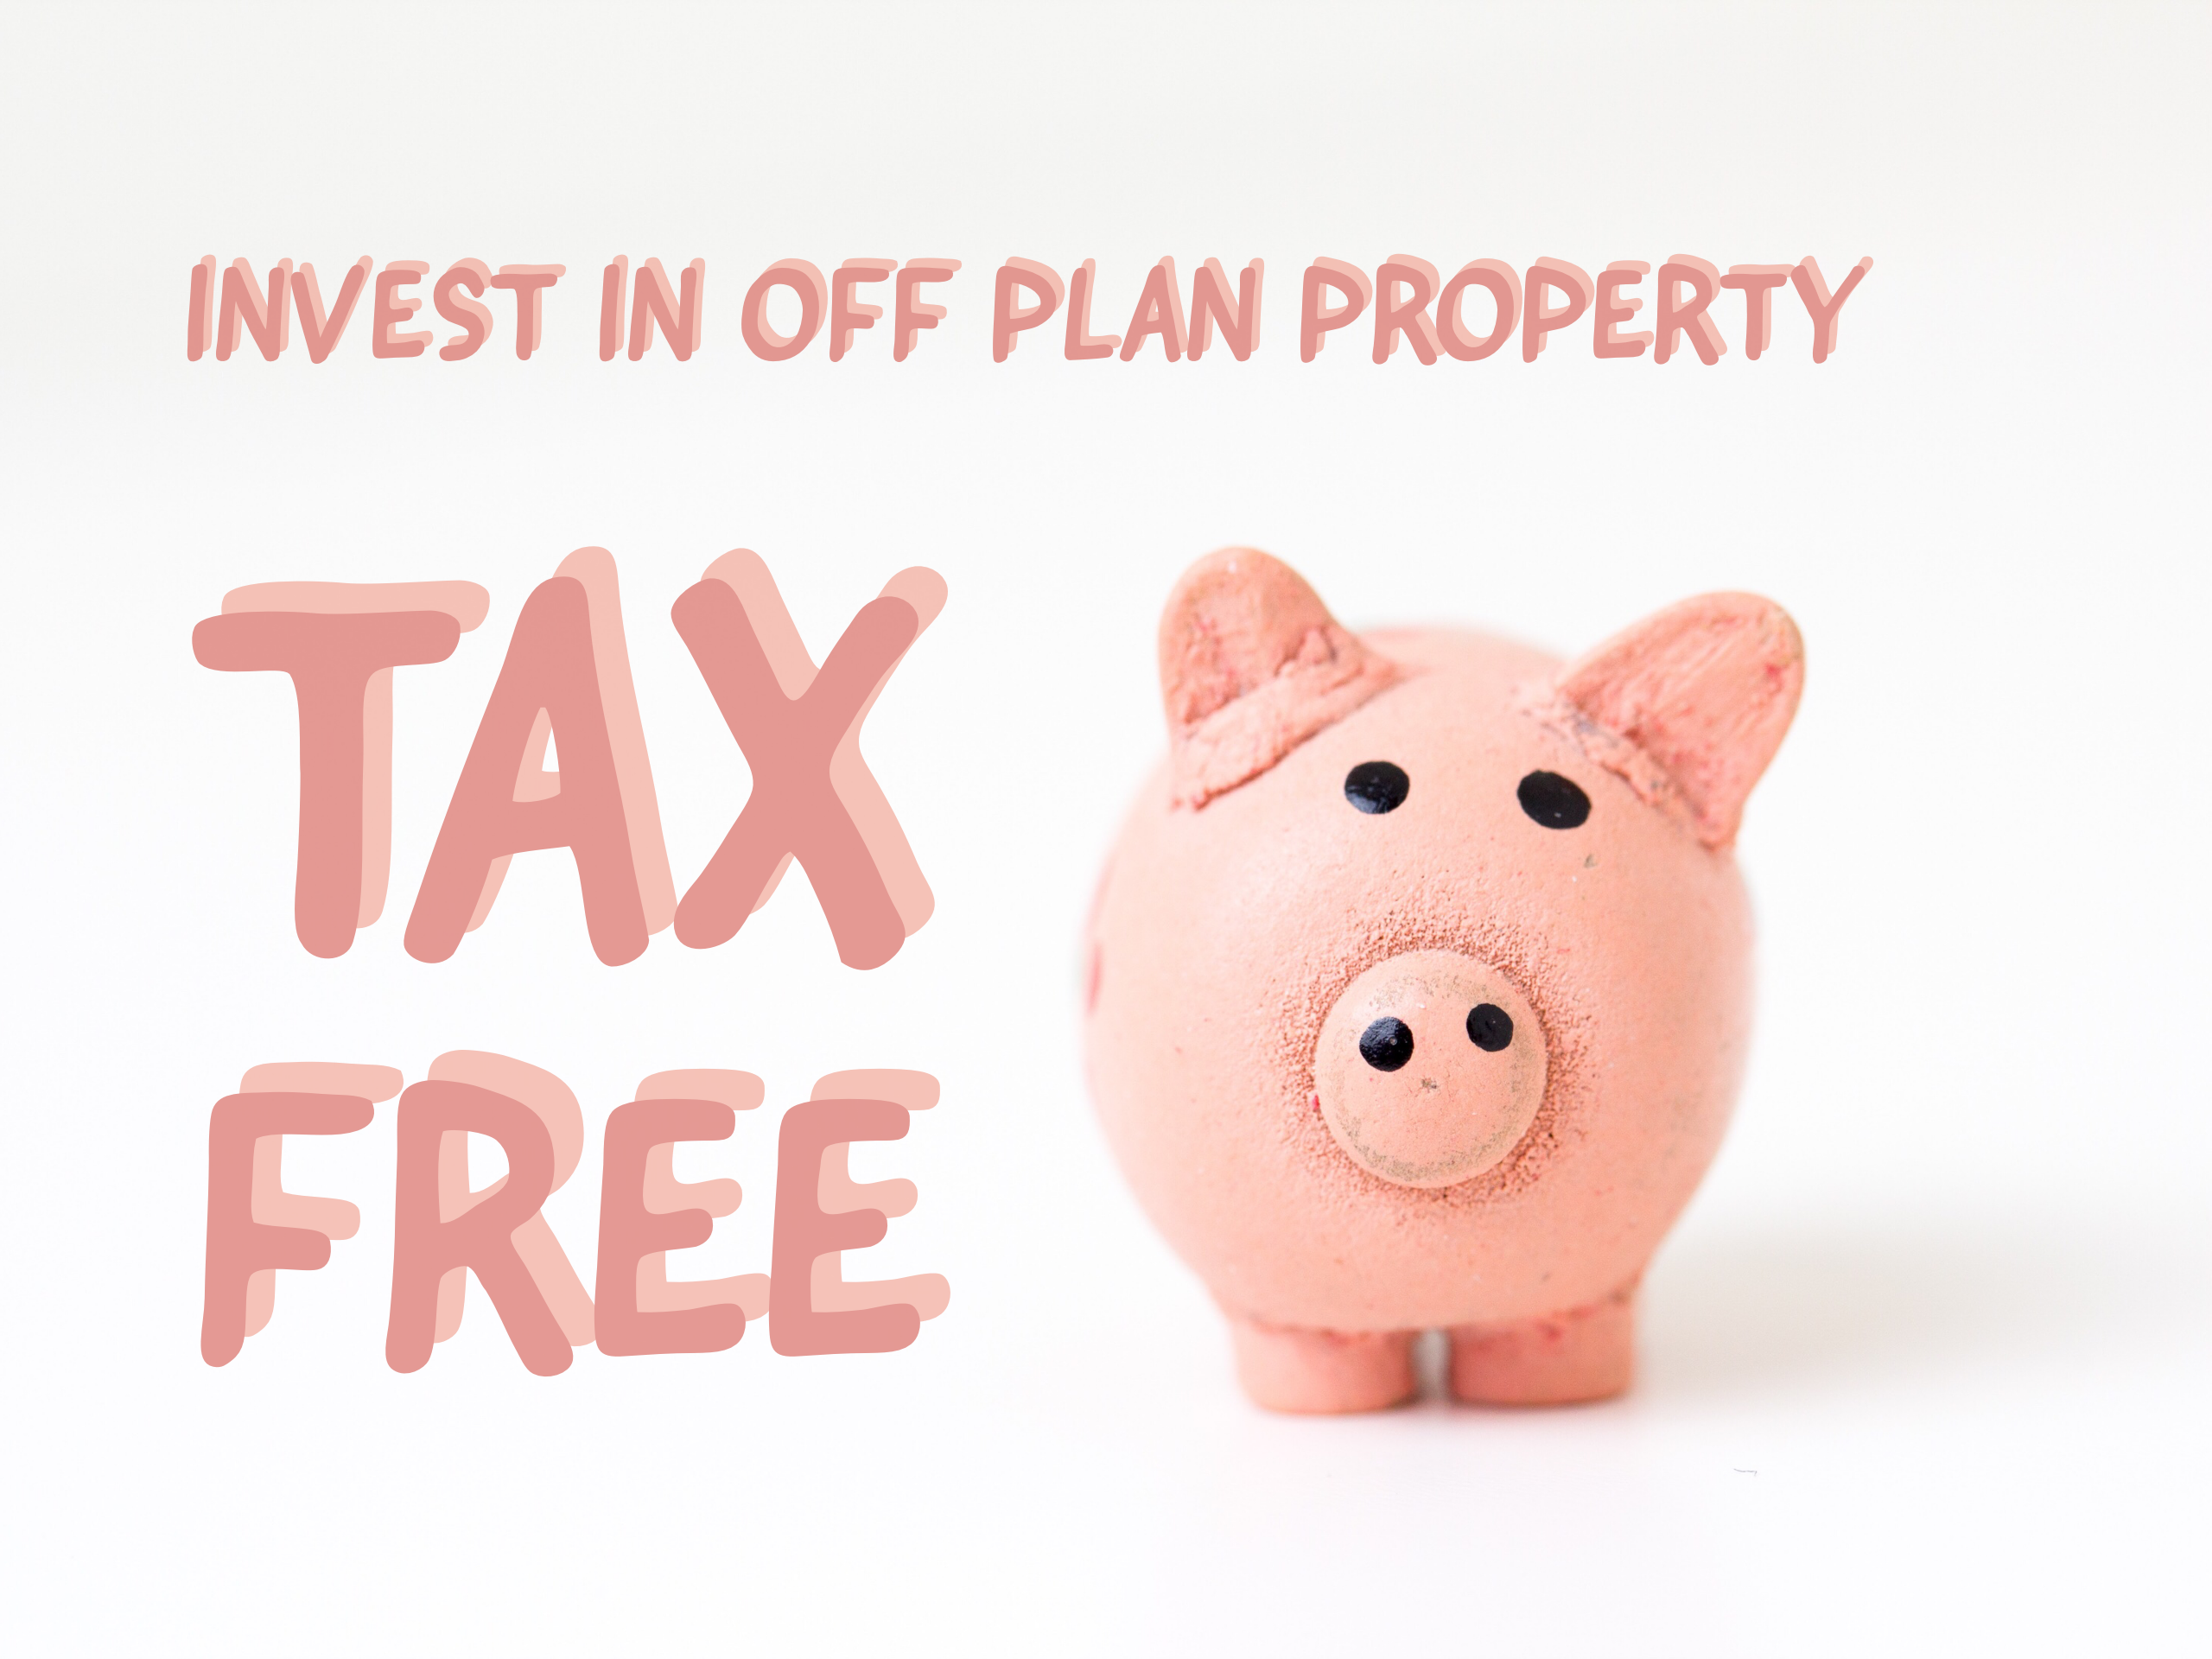 Rent tax free for 2 years - developments named Image